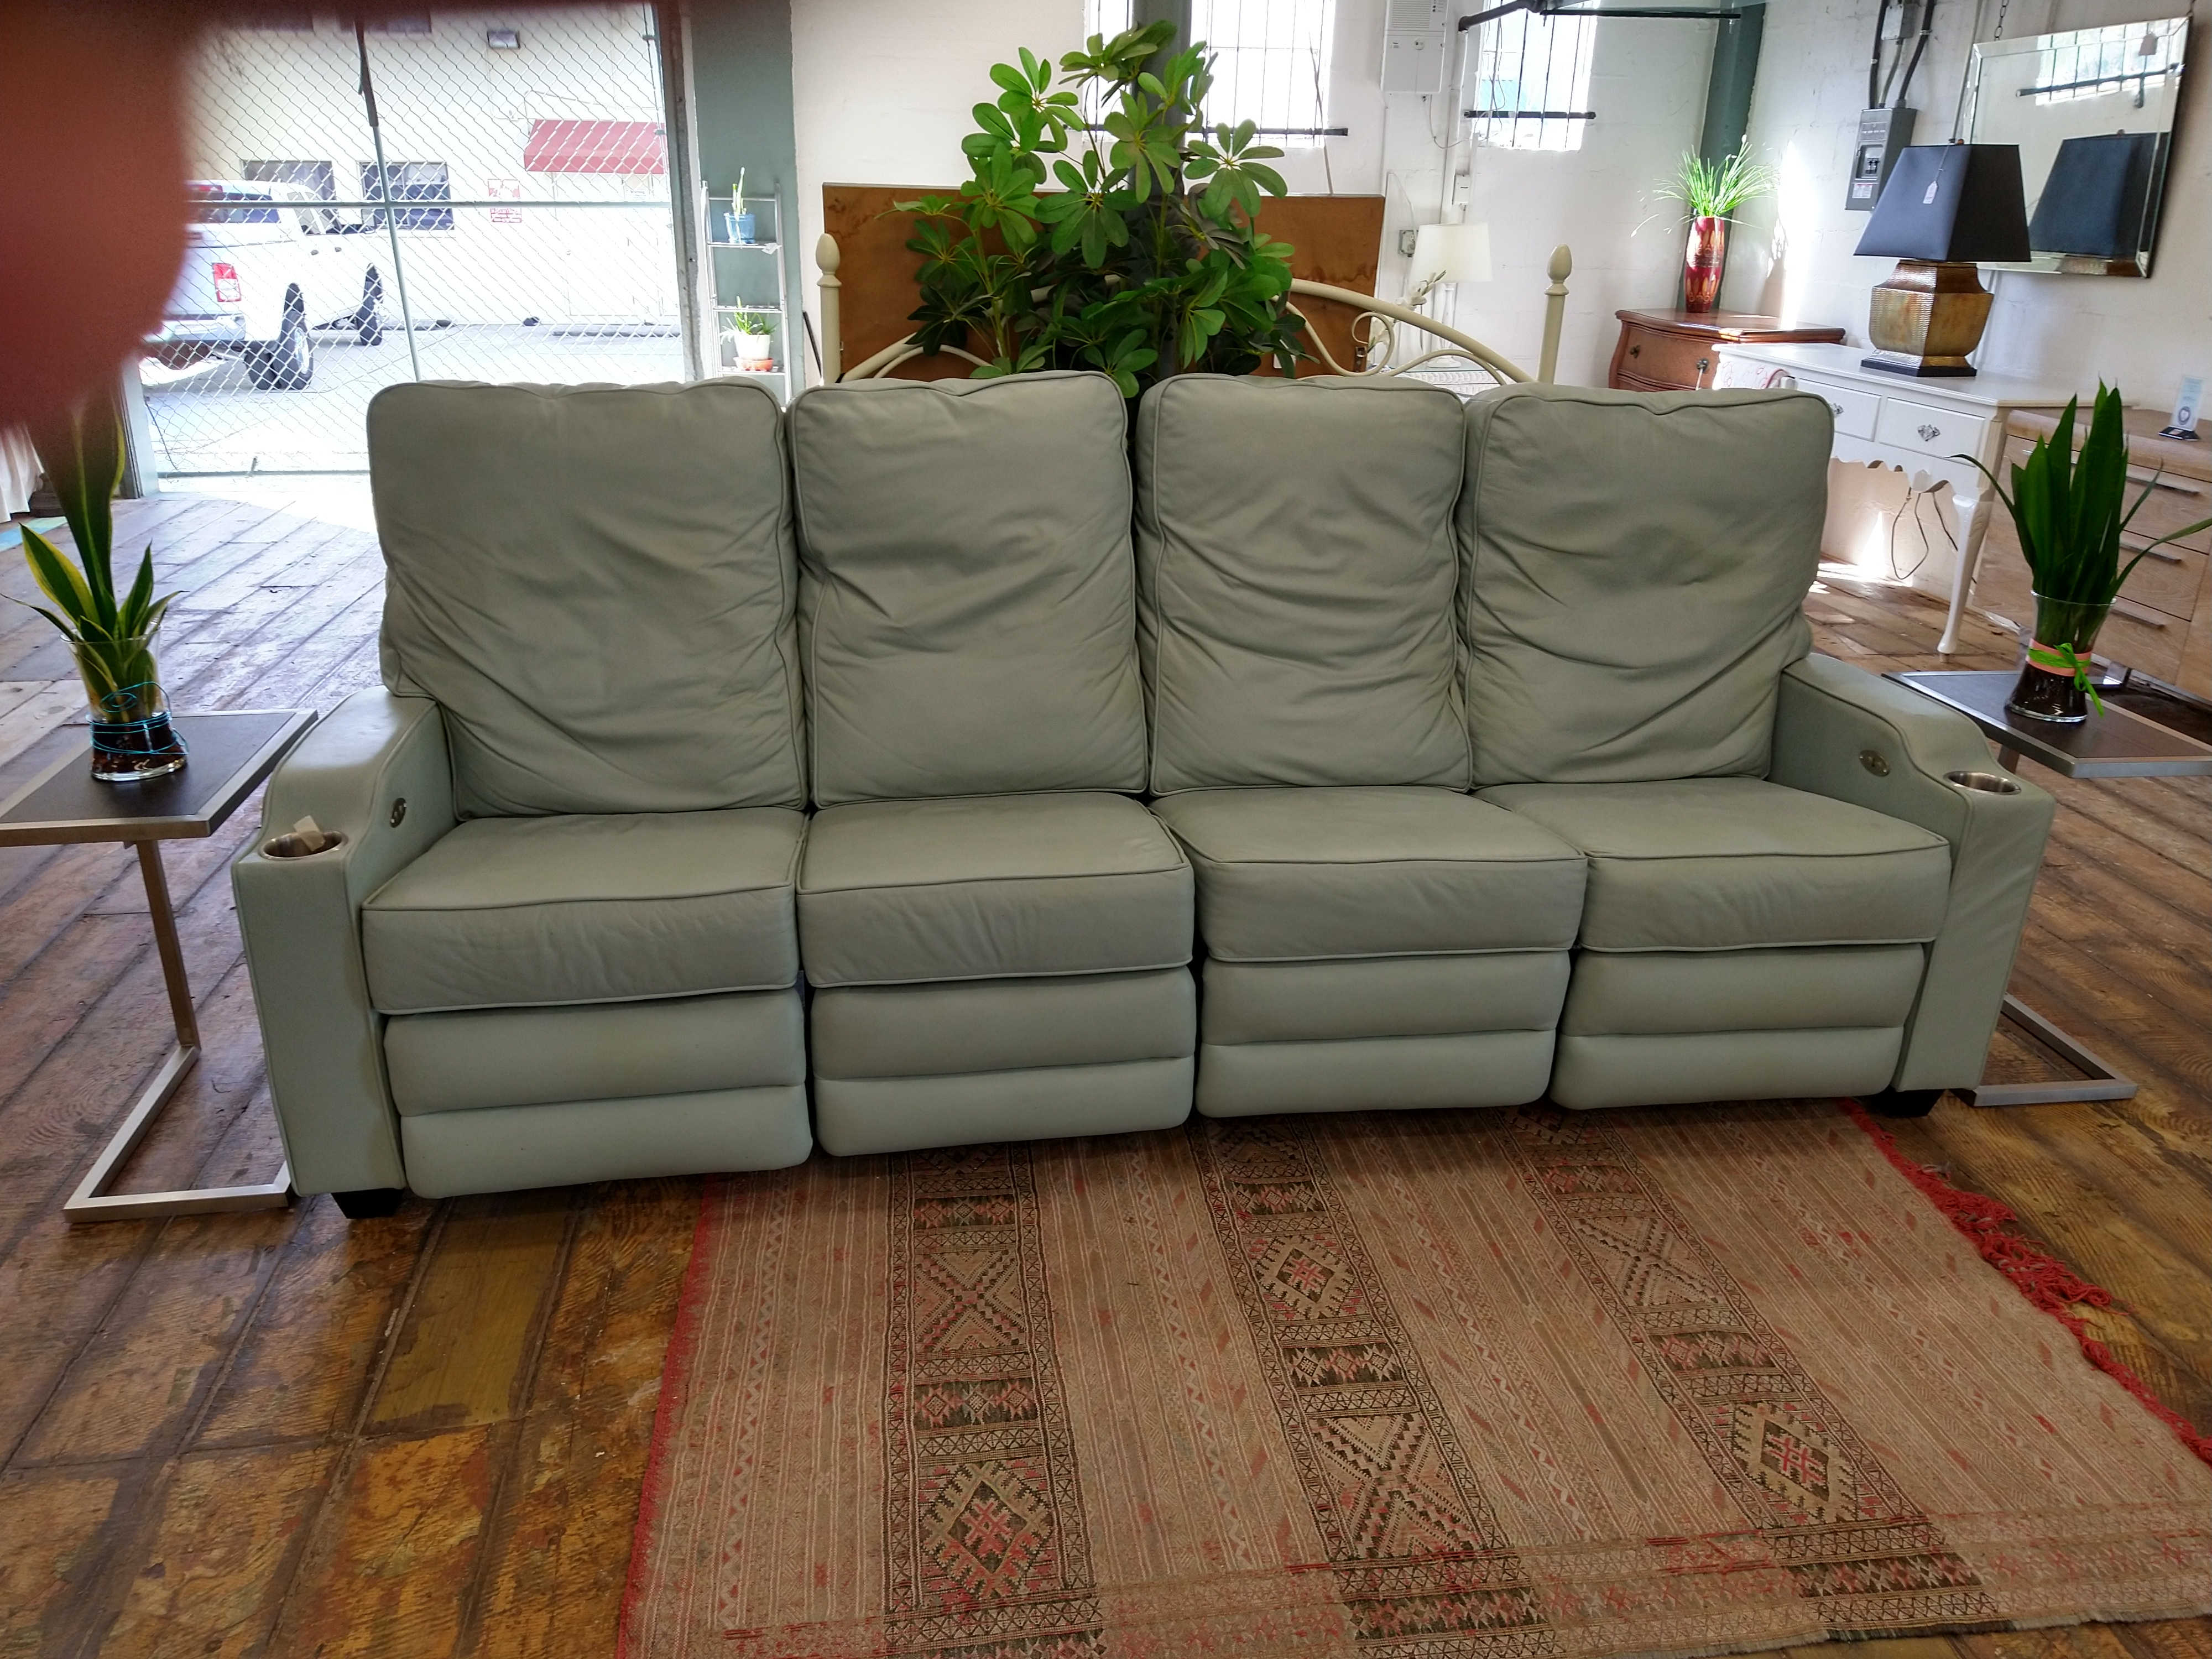 LR0364-Leather-sectional-together